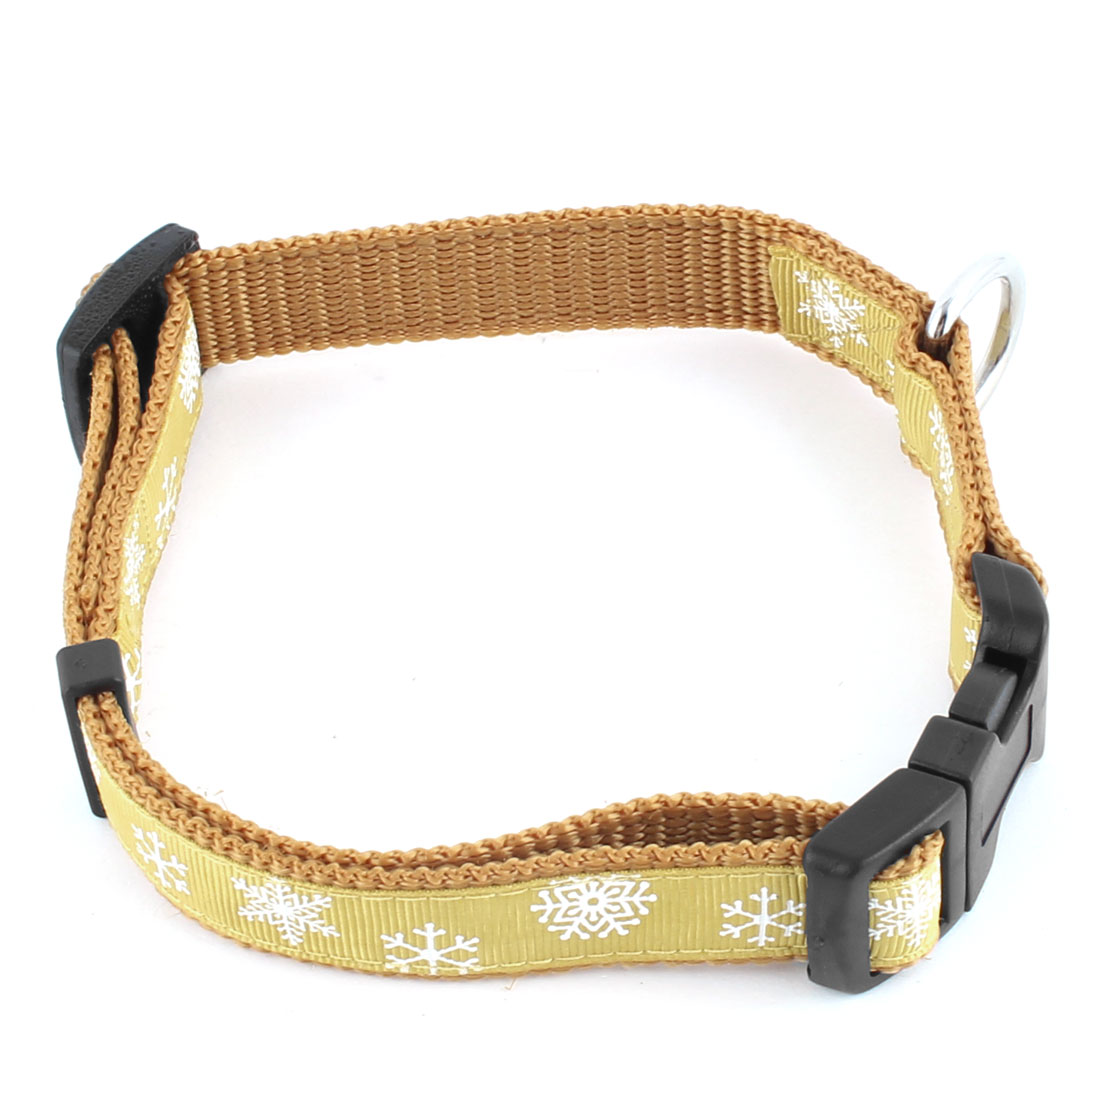 Pet Dog Nylon Snowflake Pattern Adjustable Buckle Strap Belt Neck Collar Khaki